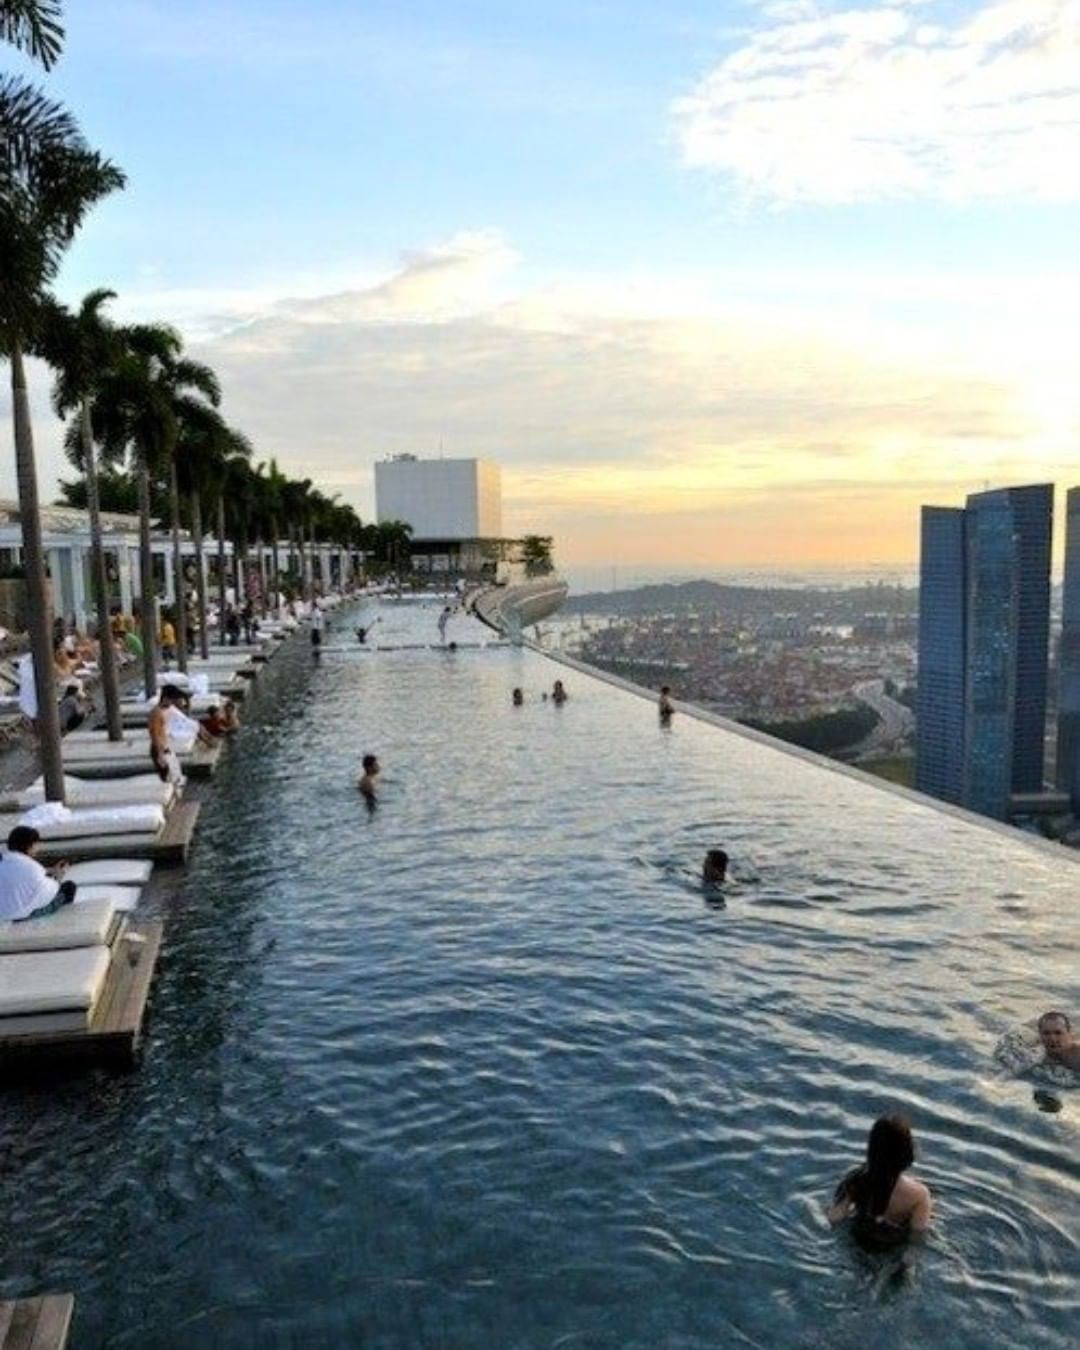 Infinity pool 💦 . 📍 Singapour . 📷@roadtrippers . #malaysia #indonesia  #love #travel #luxury #resort #vacation #instagood #travelgram #holiday #design #lifestyle #beach #beautiful #thebest #photooftheday #instatravel  #summer #trip  #amazingview #beautifulview #view #goals #islands #island #niceview #paradise #paradiseisland #beautifulday #perfectplace